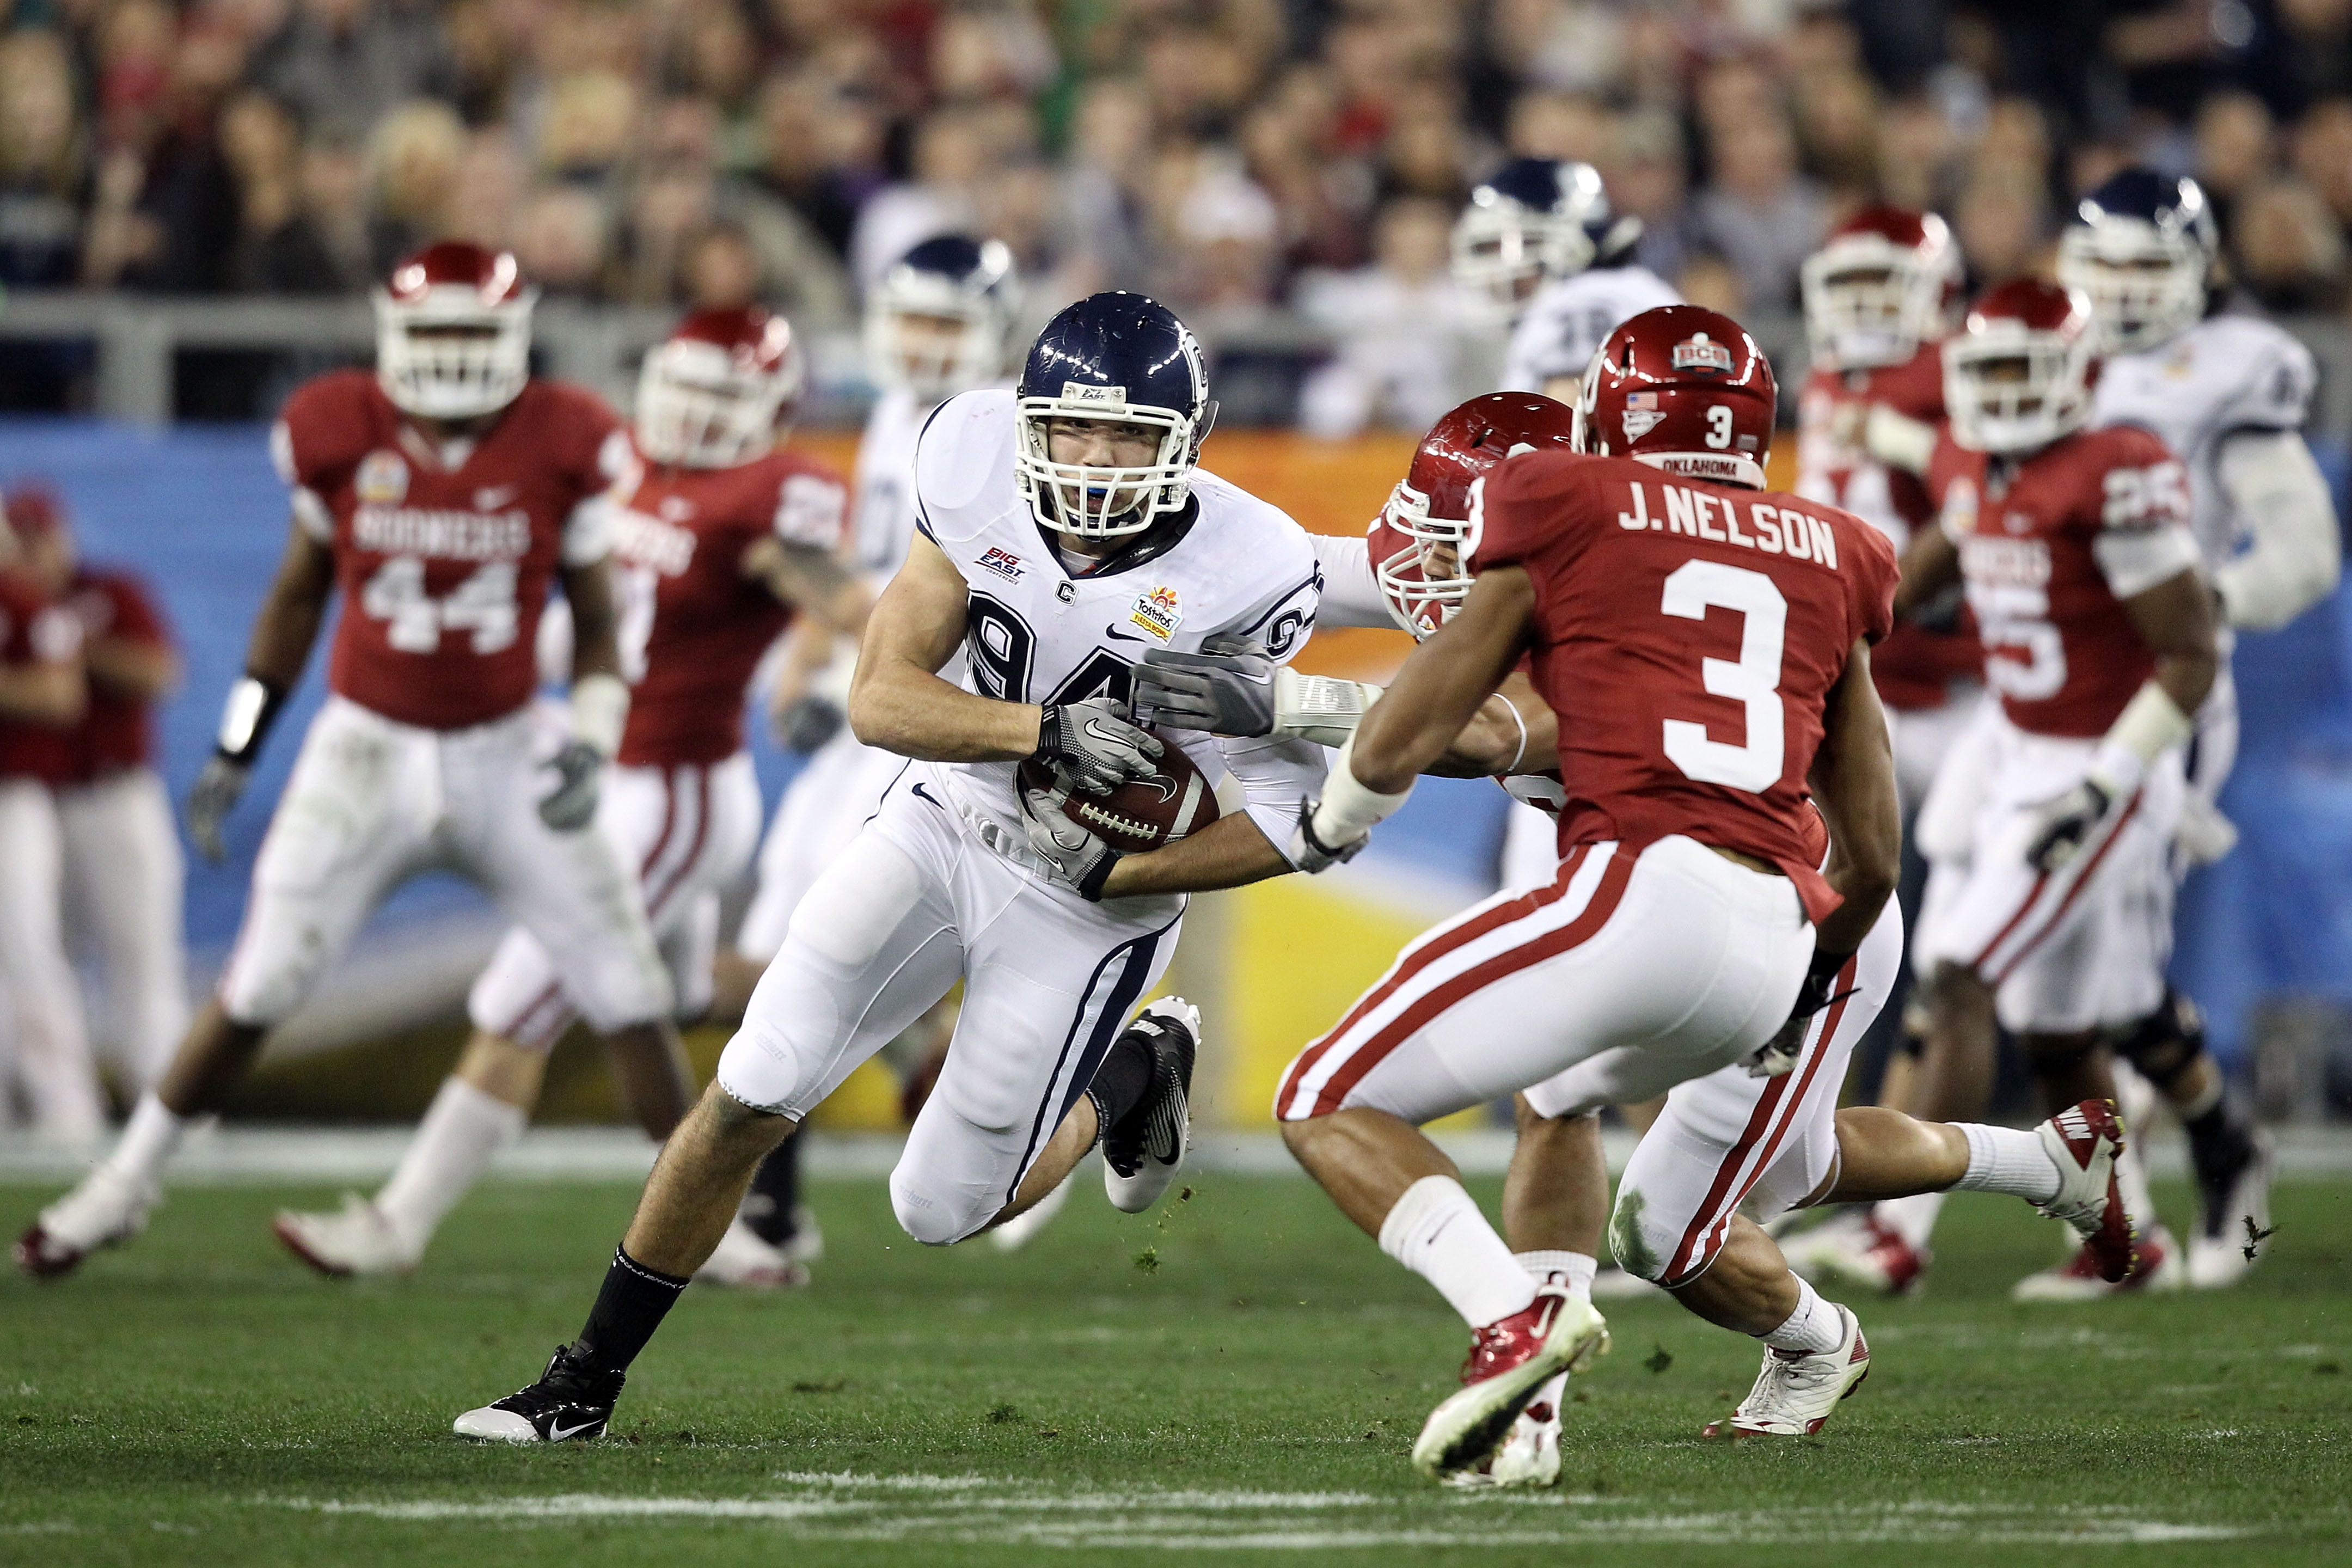 GLENDALE, AZ - JANUARY 01:  Ryan Griffin #94 of the Connecticut Huskies runs after a catch in the first half while taking on the Oklahoma Sooners during the Tostitos Fiesta Bowl at the Universtity of Phoenix Stadium on January 1, 2011 in Glendale, Arizona